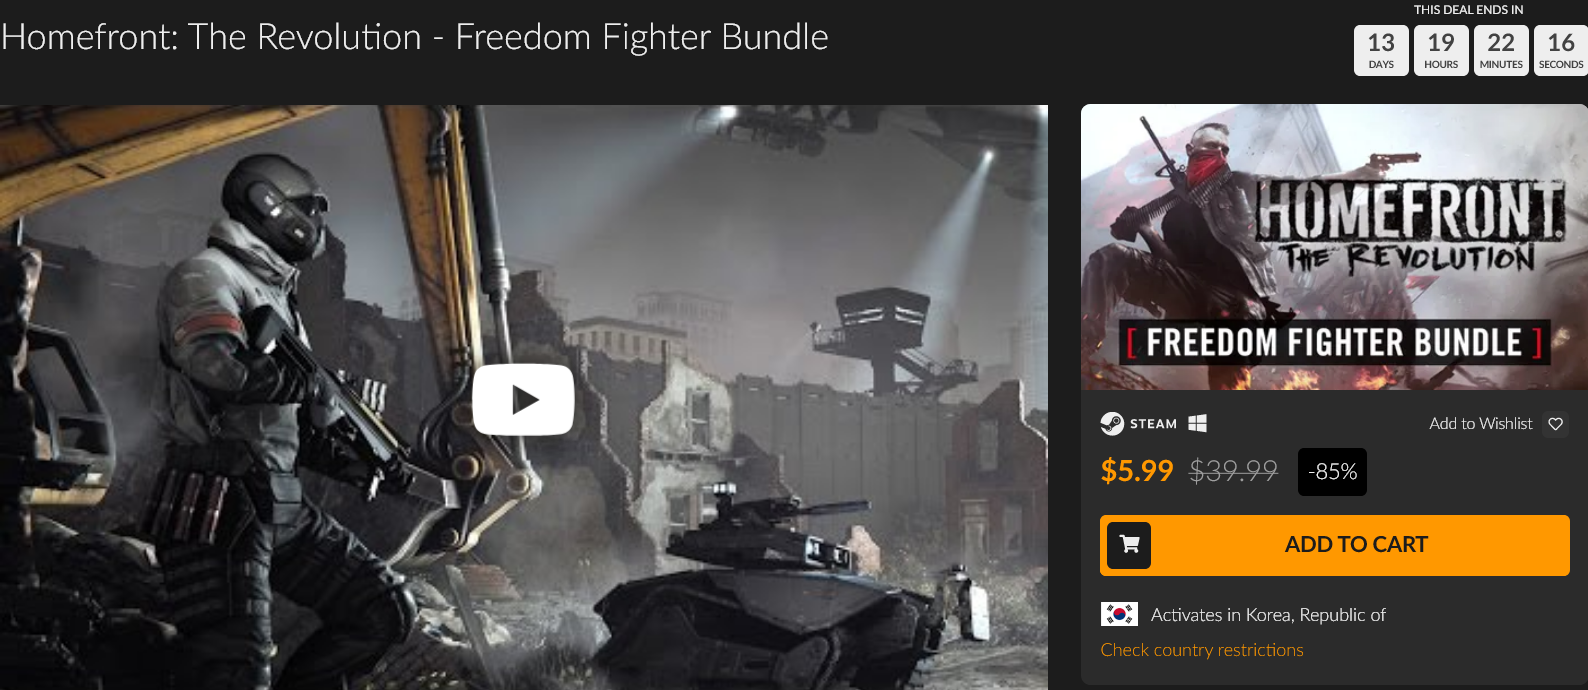 Screenshot_2020-09-12 Homefront The Revolution - Freedom Fighter Bundle PC Steam Game Fanatical.png